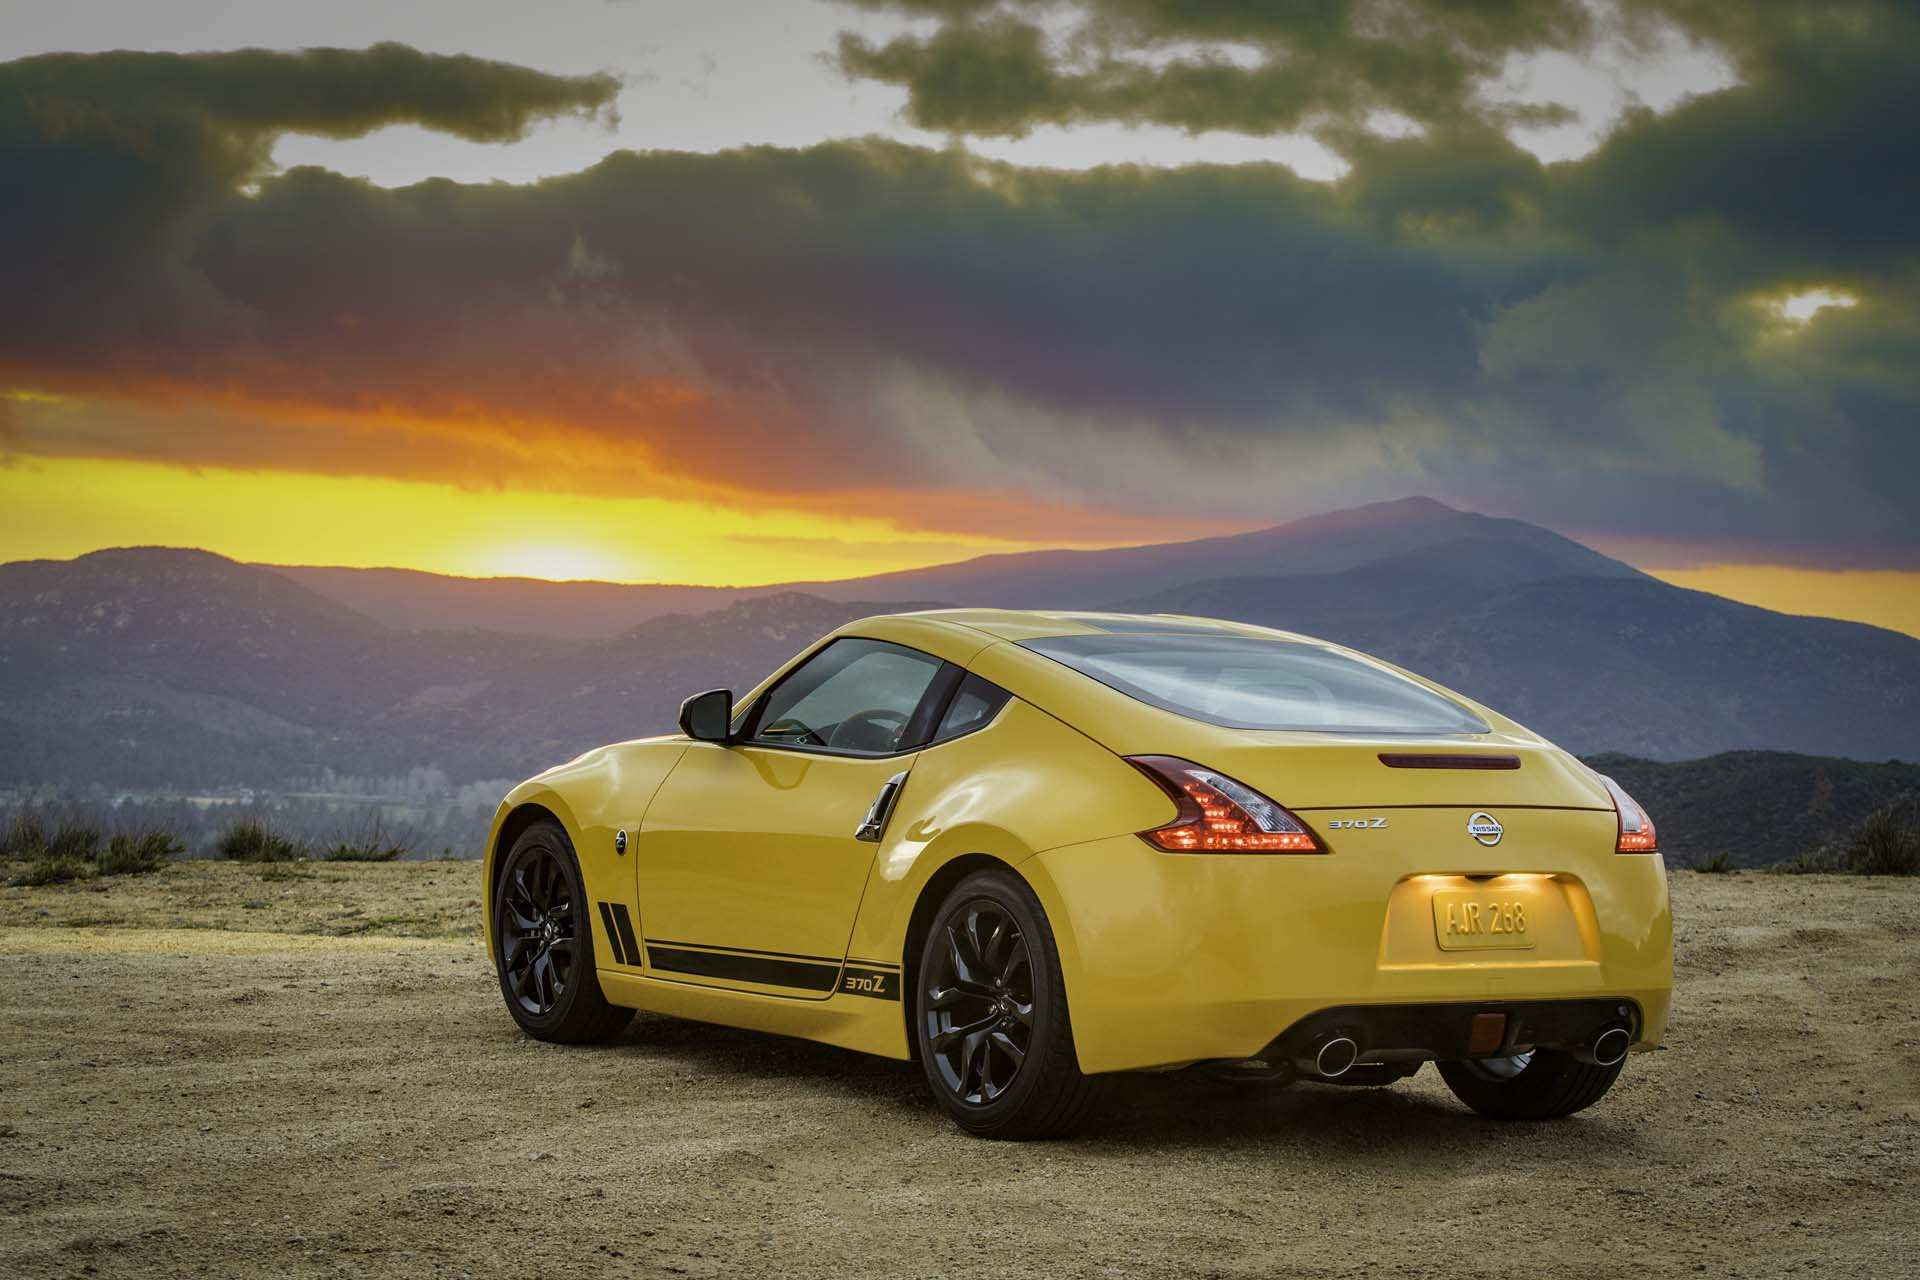 43 All New Nissan Fairlady Z 2020 Redesign and Concept with Nissan Fairlady Z 2020